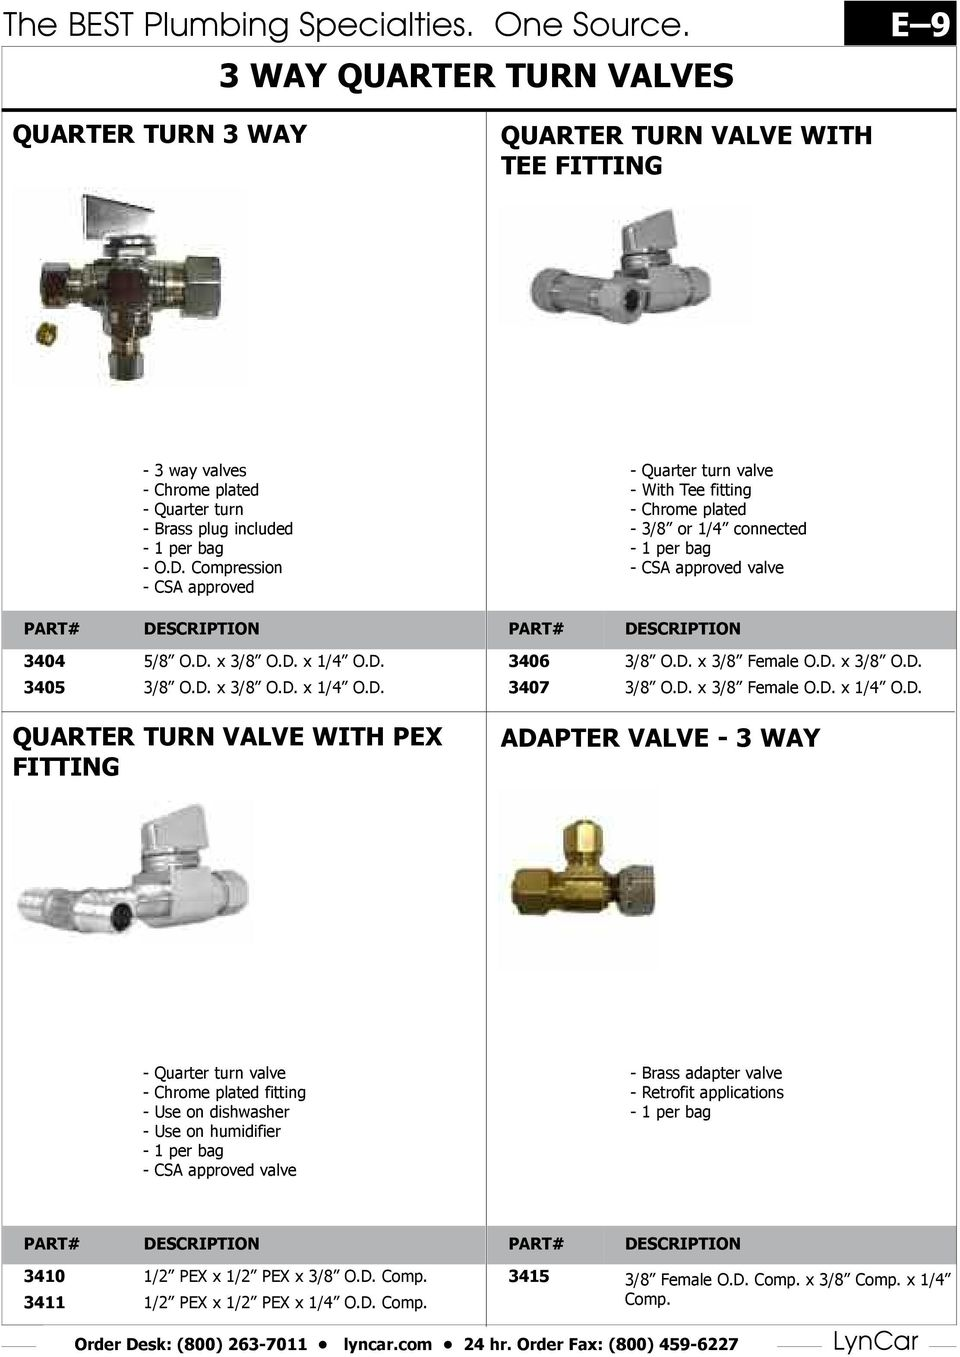 The Best Plumbing Specialties One Source E 1 Pdf At Light Fixture Box Proceeds To First 3way Switch A 4 Compression Csa Approved Quarter Turn Valve With Tee Fitting Chrome Plated